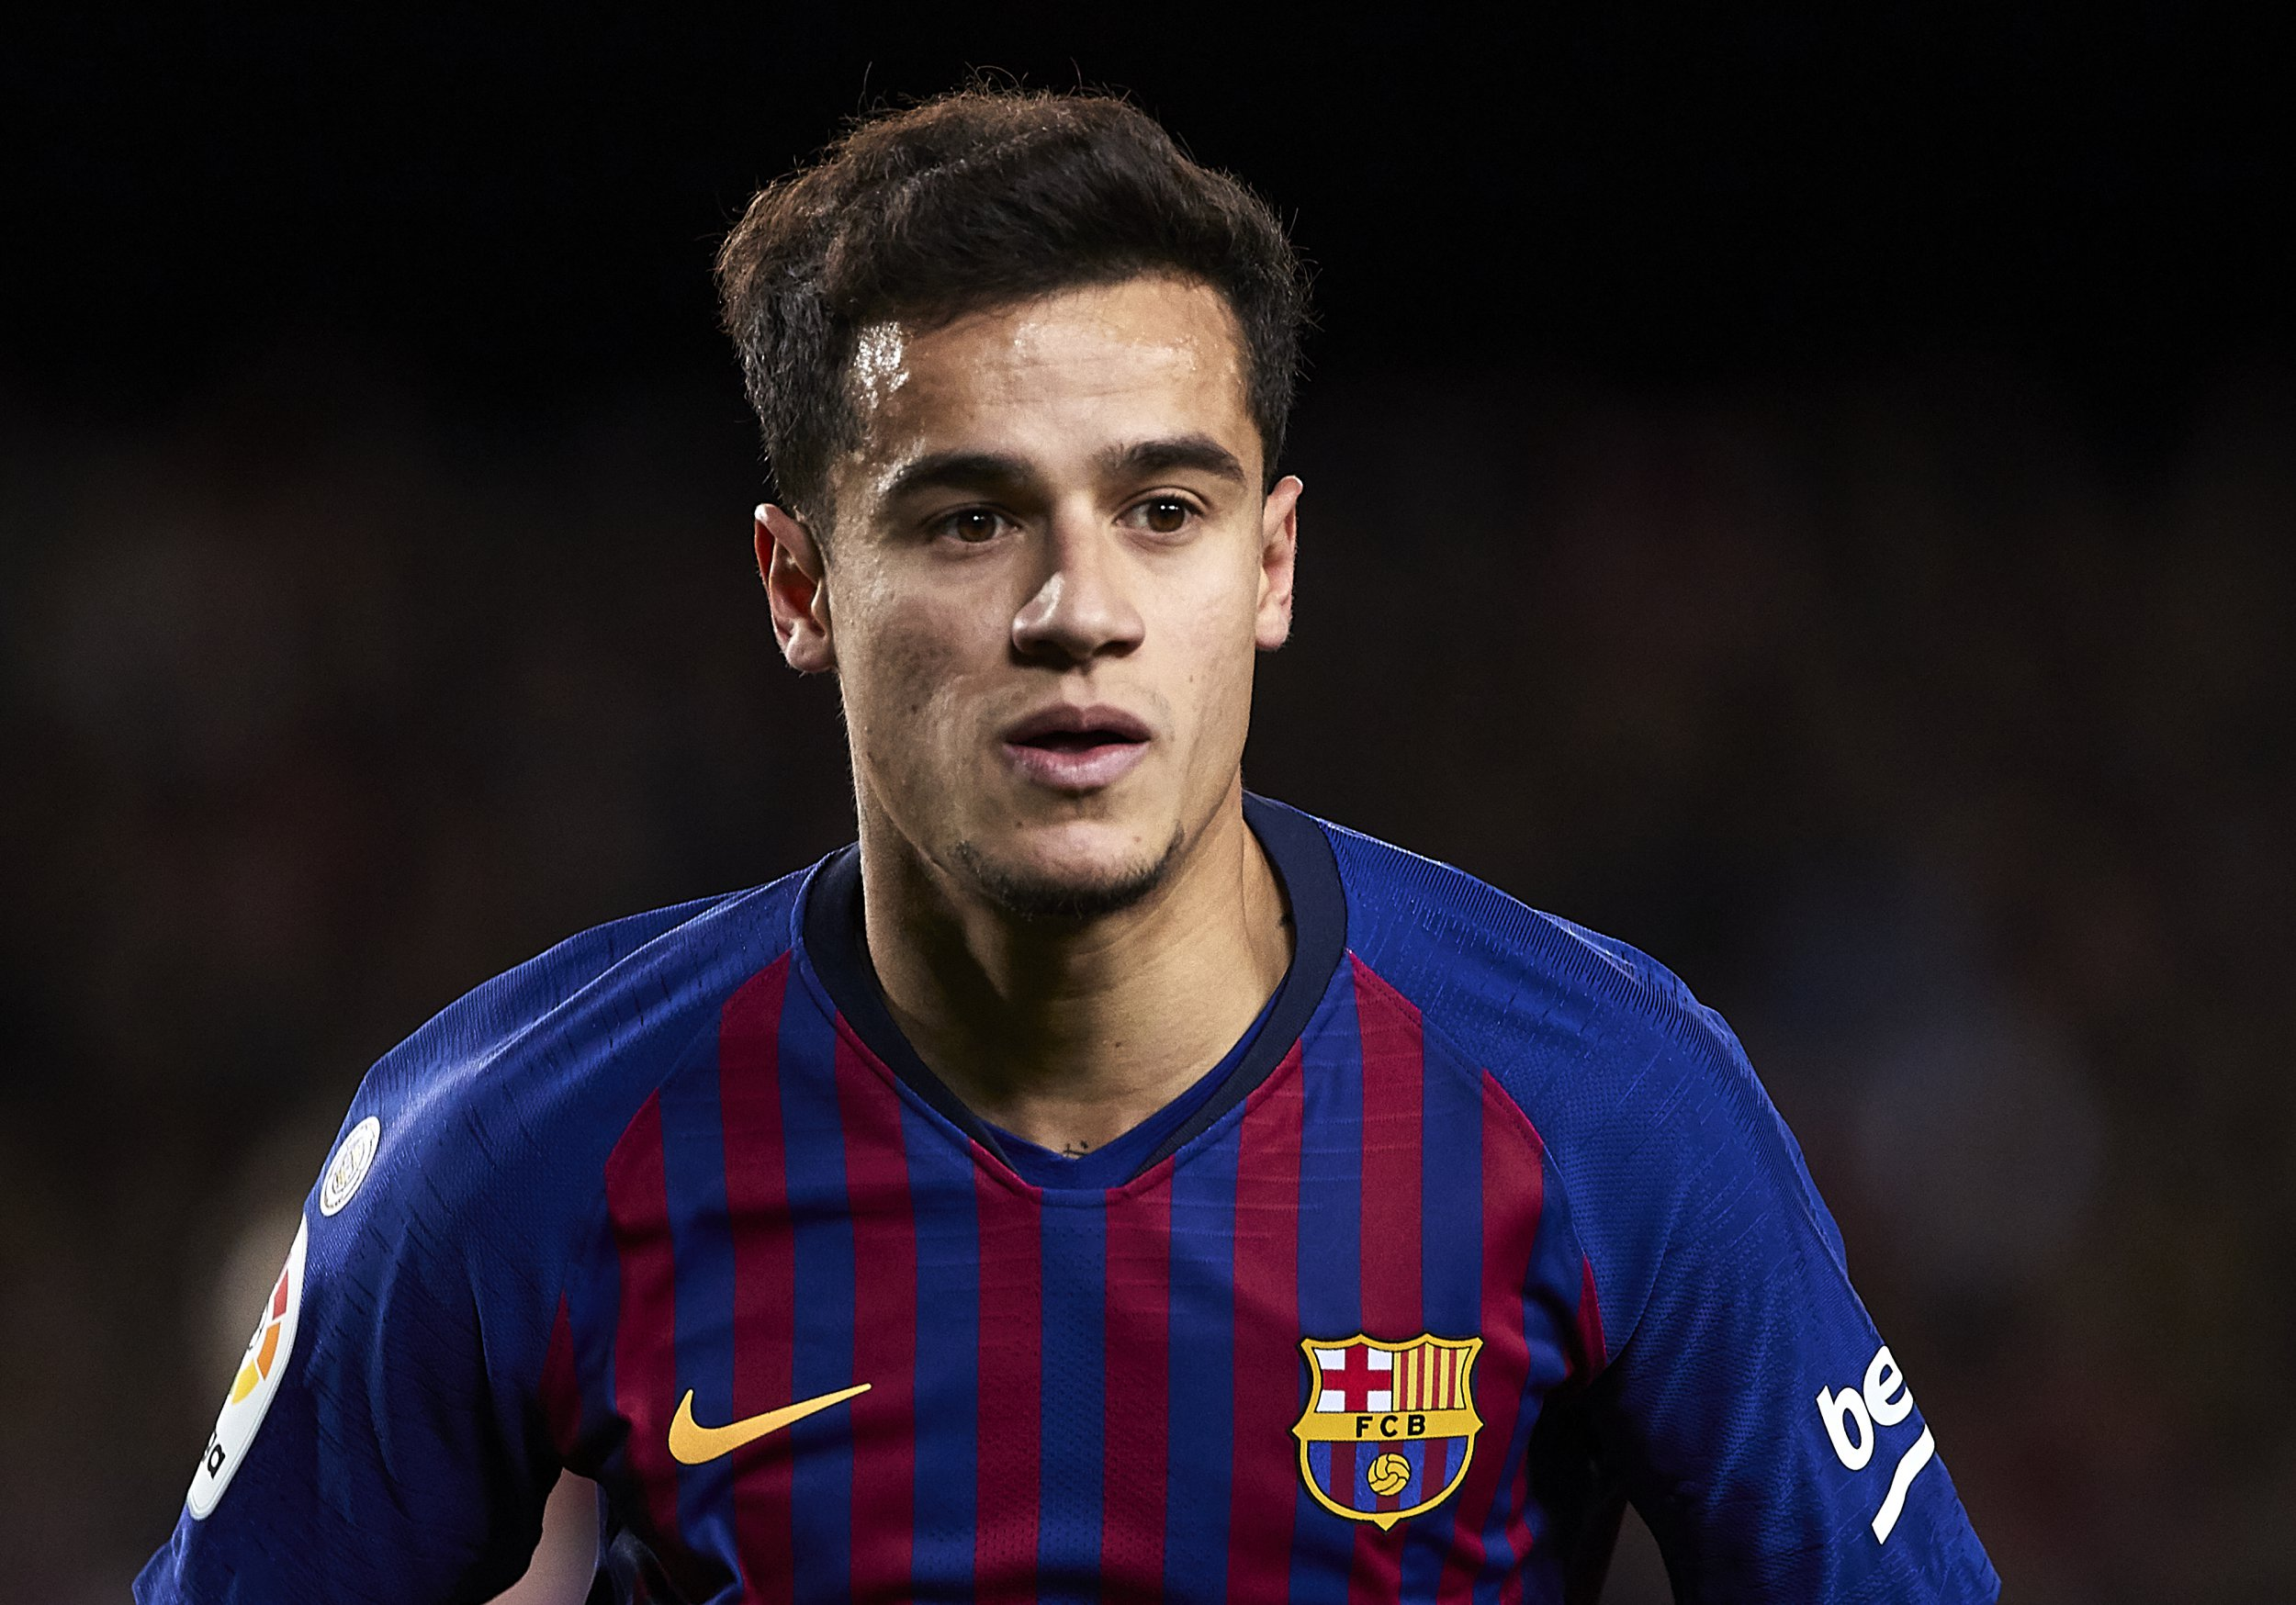 BARCELONA, SPAIN - FEBRUARY 02: Philippe Coutinho of FC Barcelona looks on during the La Liga match between FC Barcelona and Valencia CF at Camp Nou on February 02, 2019 in Barcelona, Spain. (Photo by Quality Sport Images/Getty Images)